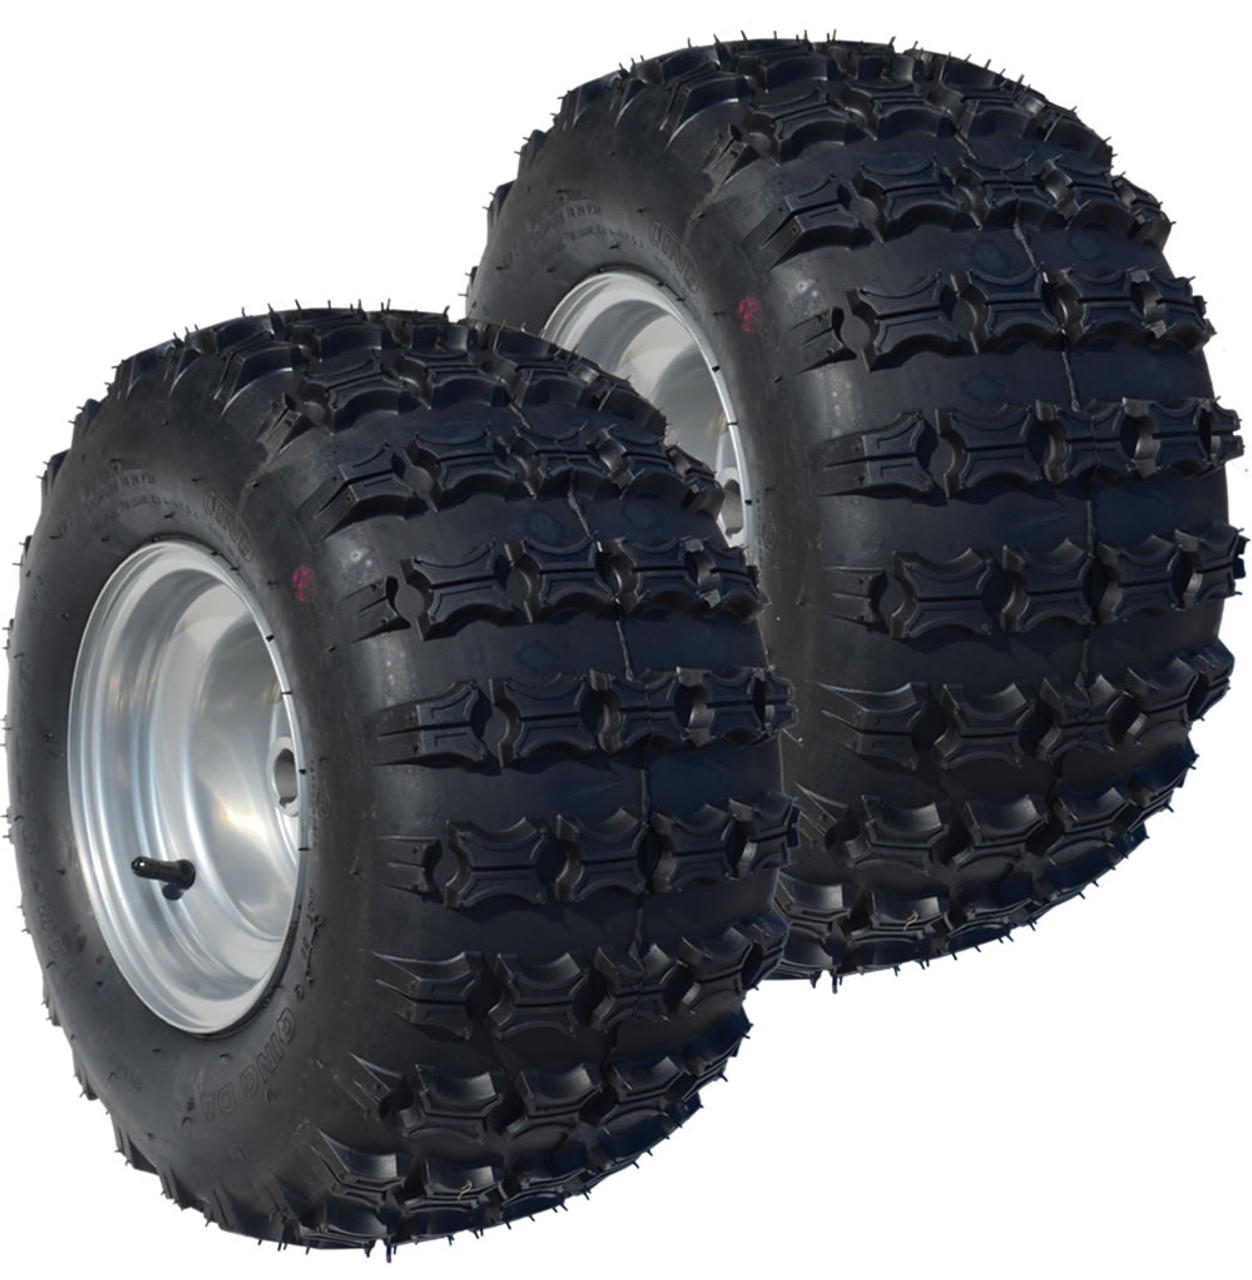 Go Kart Tires | Go Kart Wheels and Tires | Go Kart Tires ... Golf Cart Tire Supply Reviews on skid steer tires, industrial tires, motorcycle tires, 18 x 8.50 x 8 tires, utv tires, 18x8.5 tires, atv tires, sahara classic tires, trailer tires, 23x10.5-12 tires, 20x10-10 tires, carlisle tires, tractor tires, ditcher tires, sweeper tires, v roll paddle tires, bicycle tires, mud traction tires, truck tires,